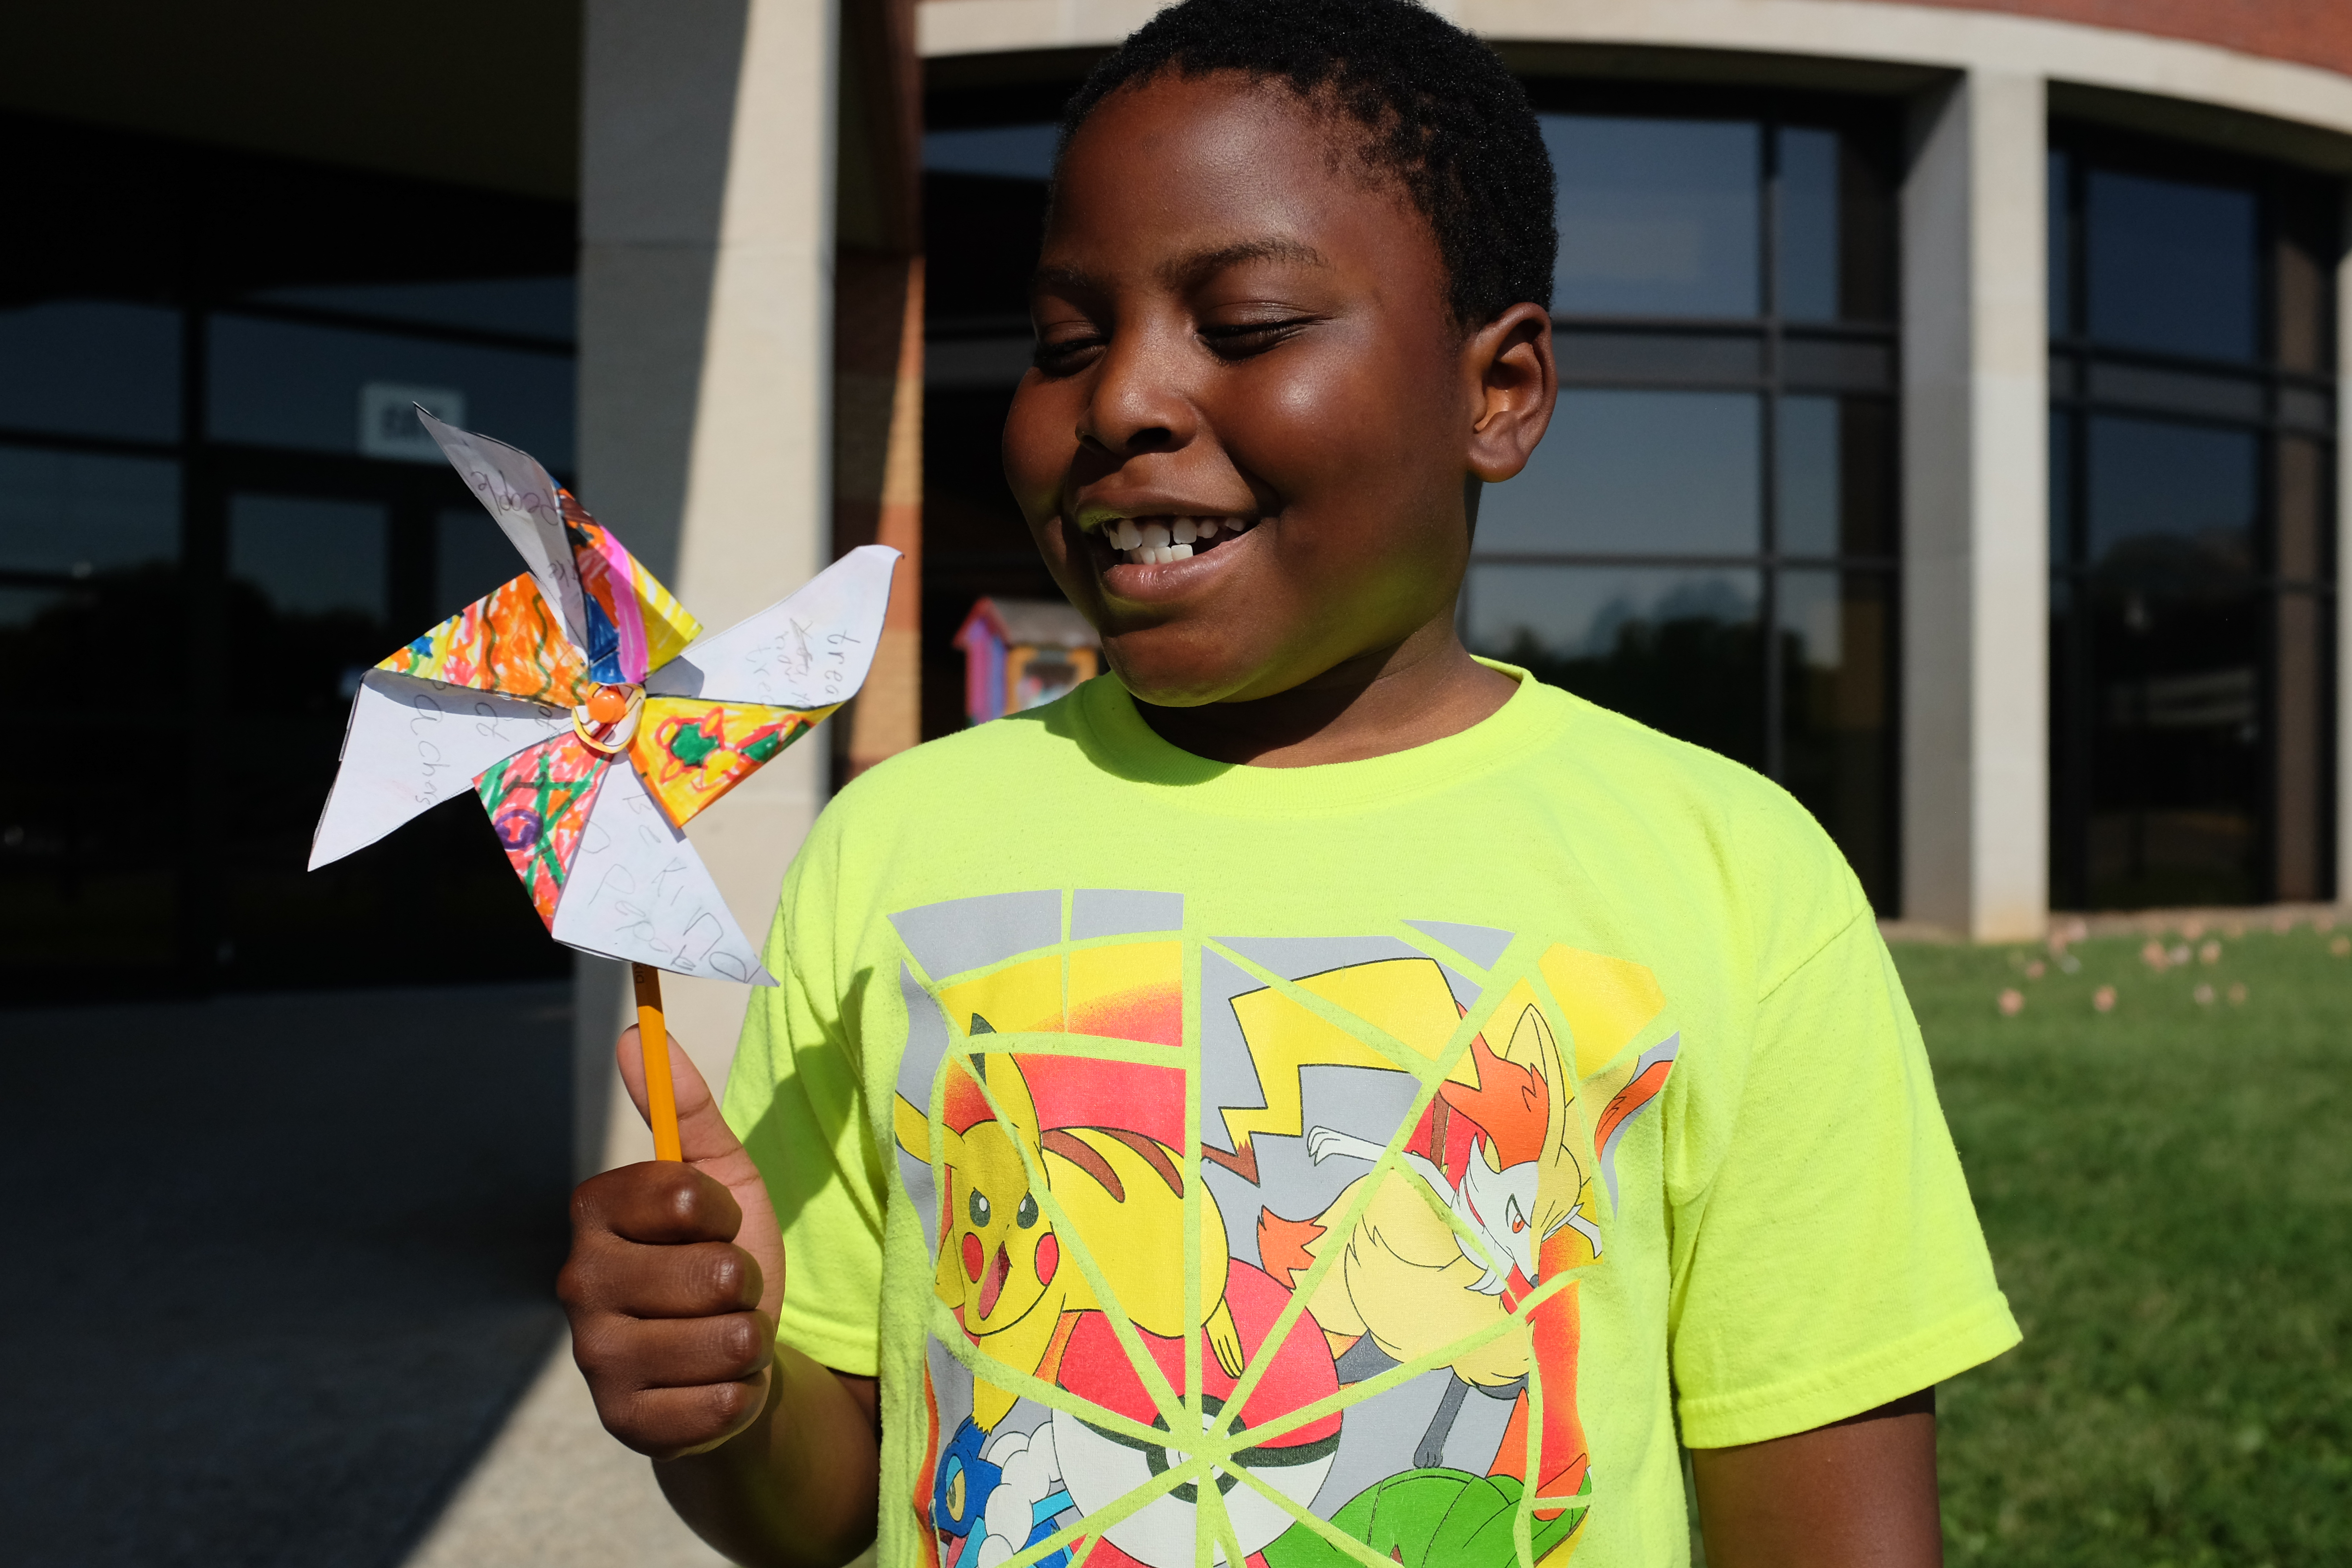 World Peace Day and the Pinwheel Project at Bradley Academy in Murfreesboro